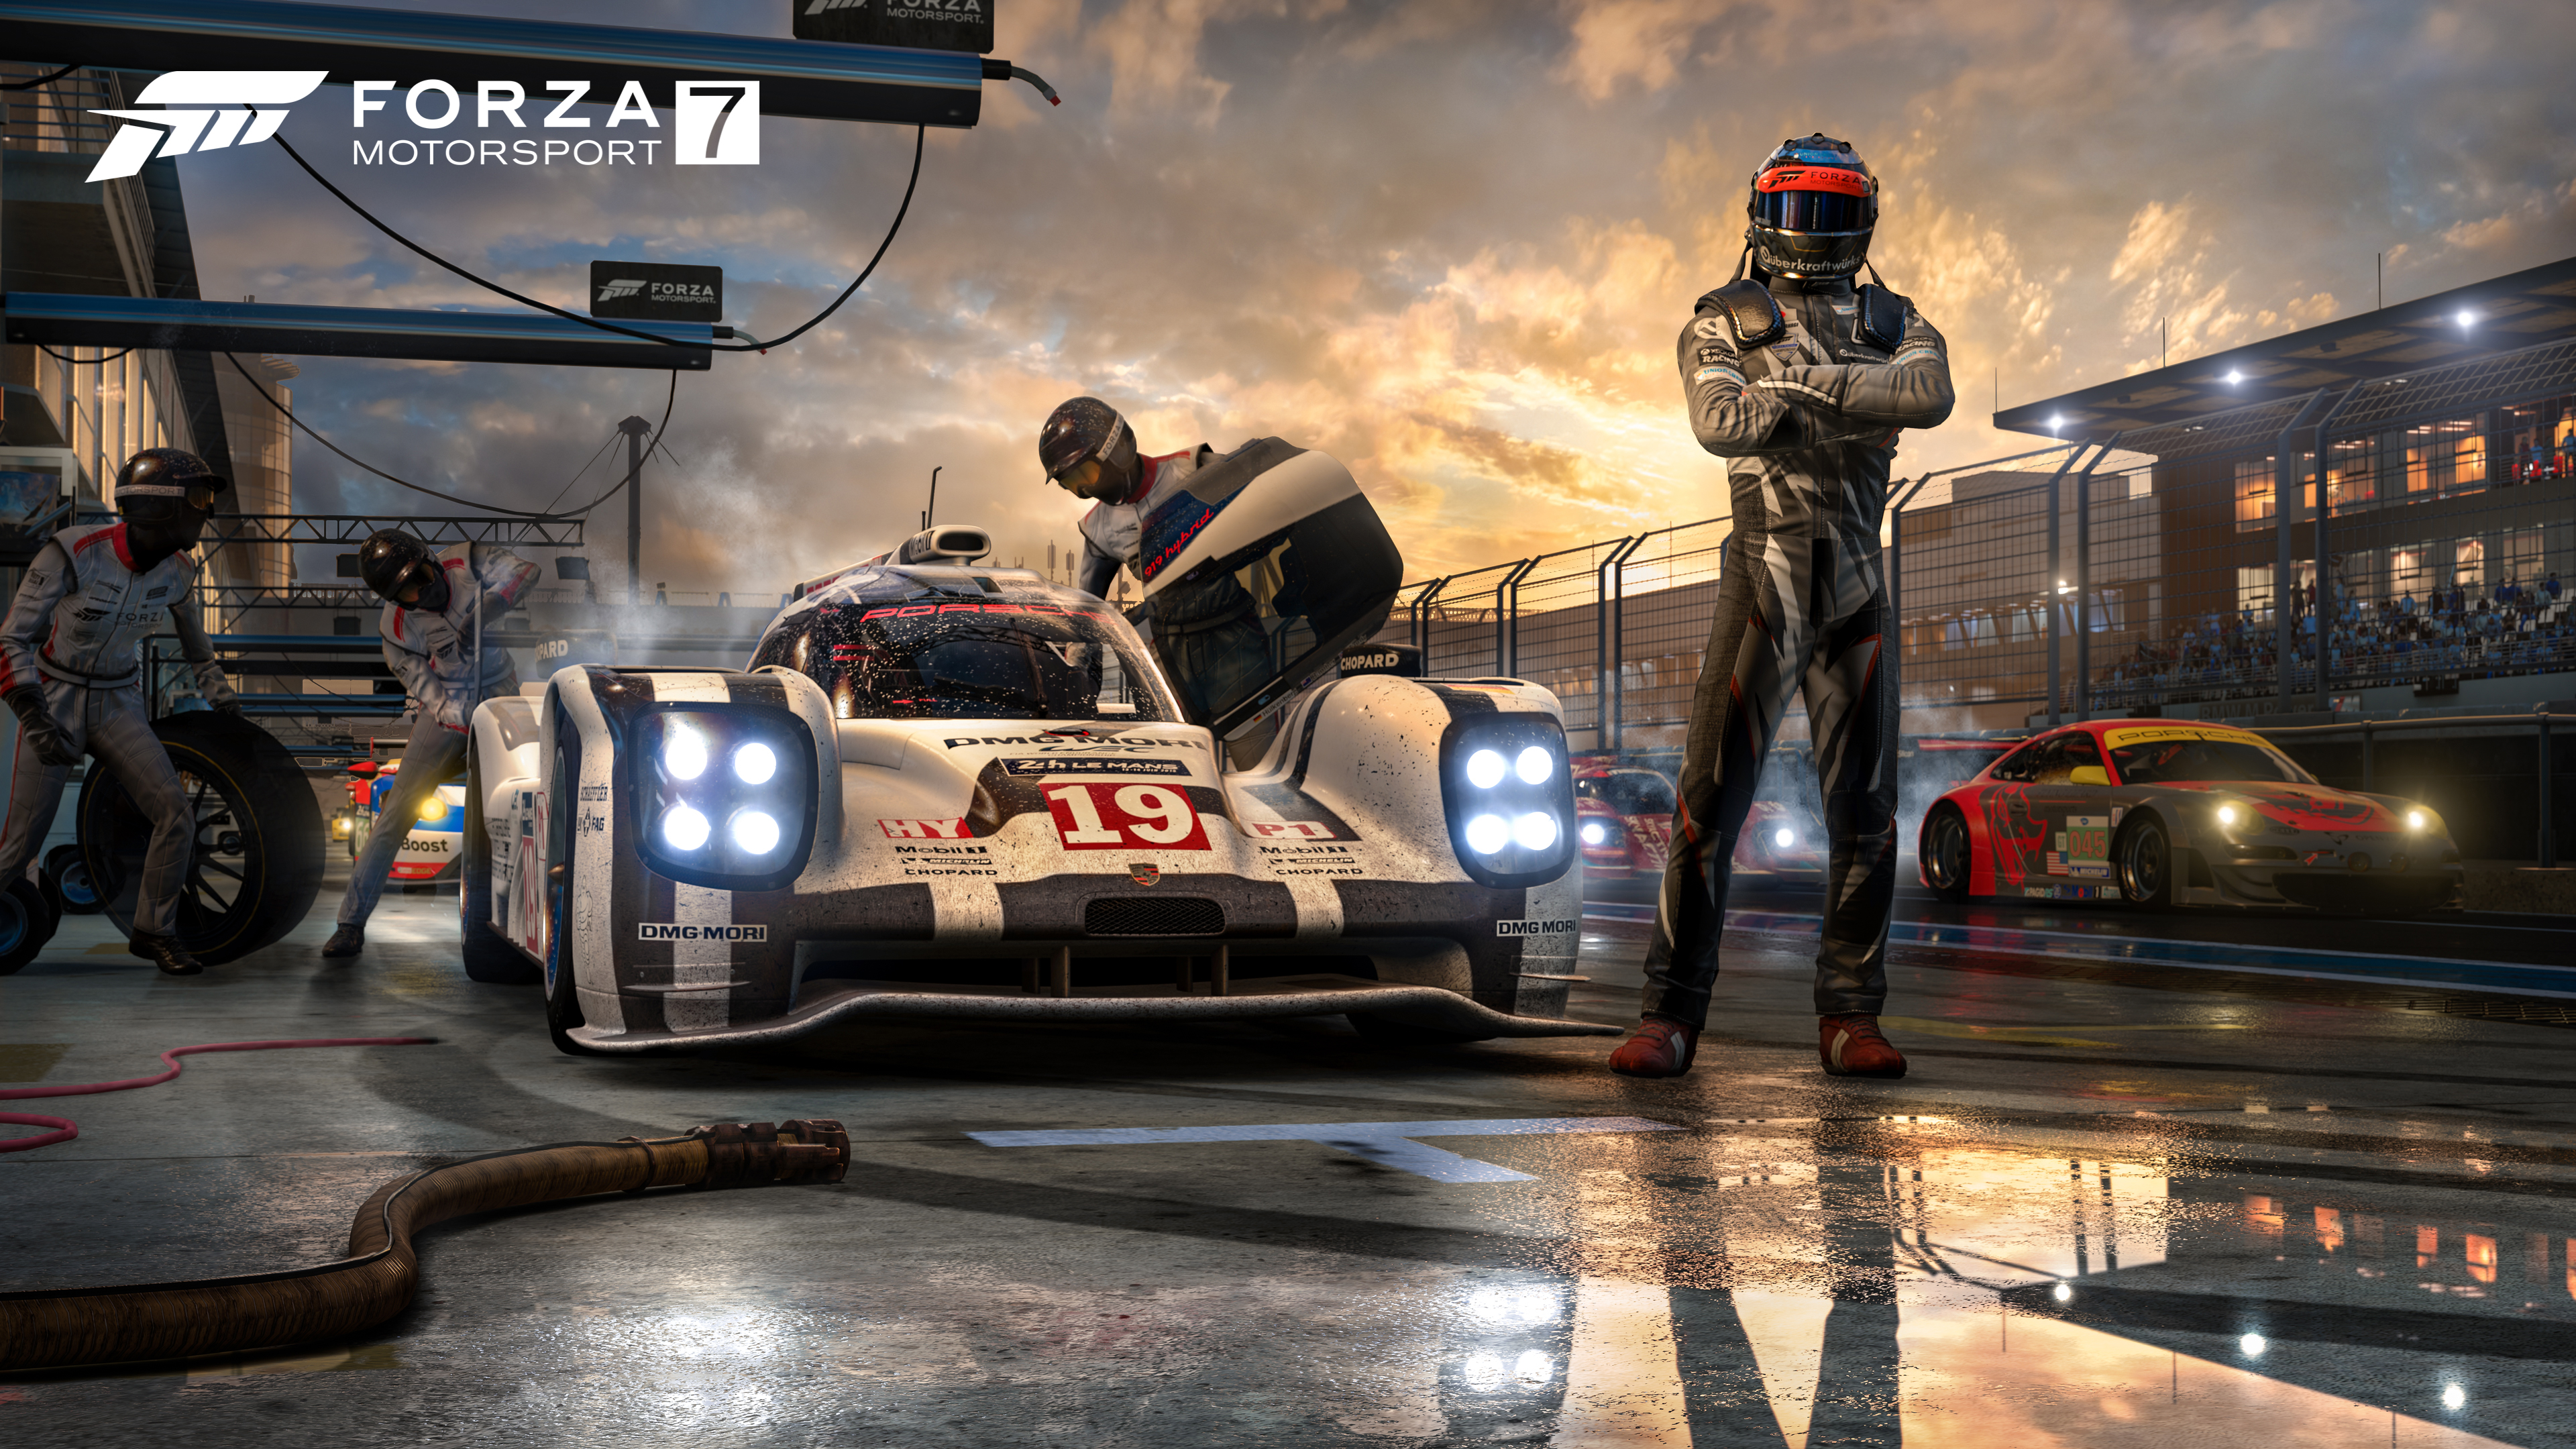 Forza Motorsport 7-hosted Le Mans Esports Series announced